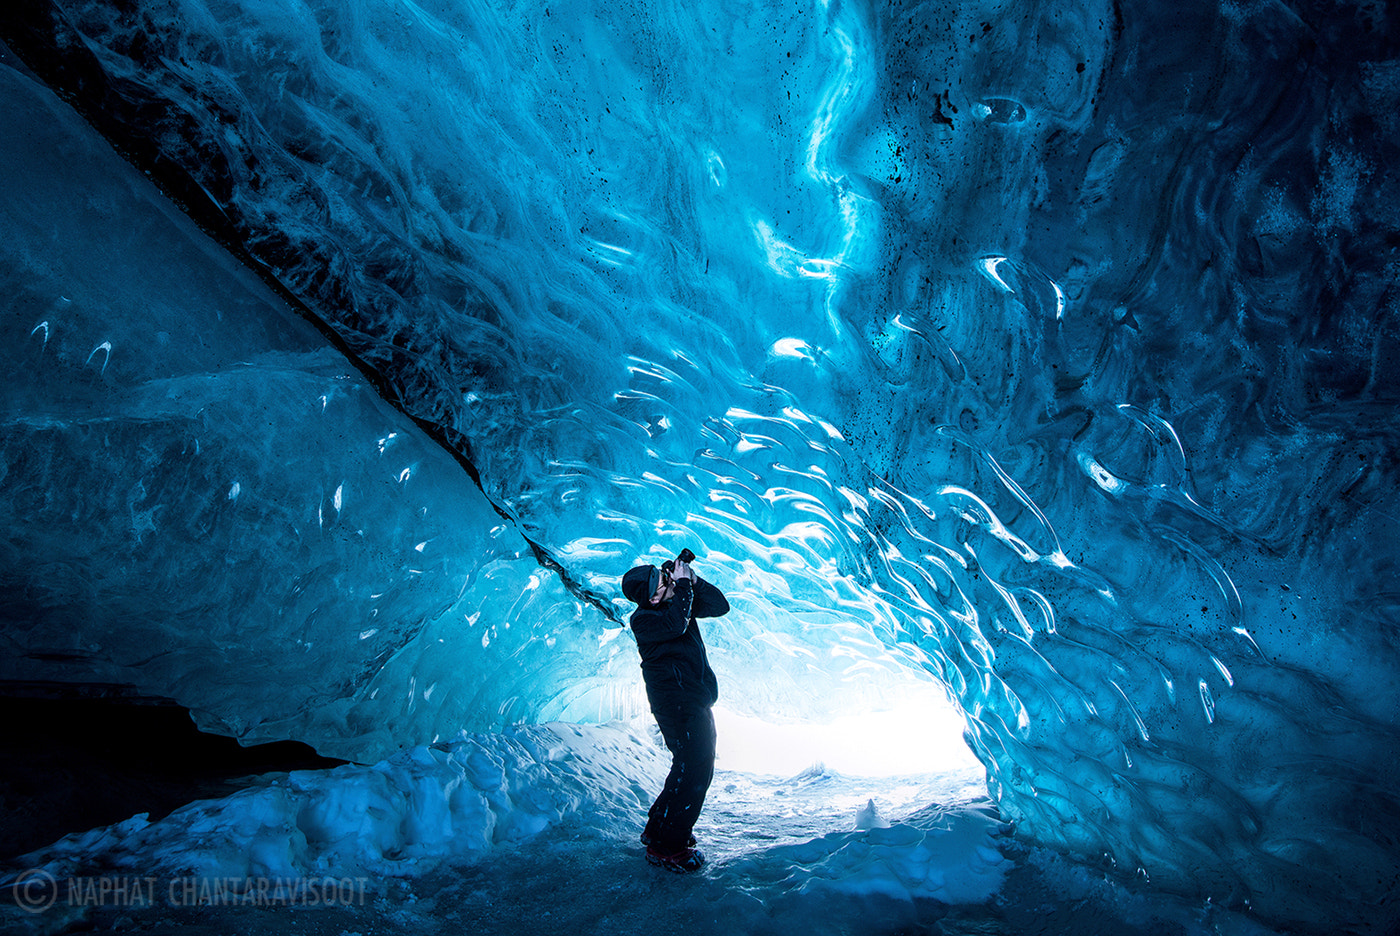 Photograph Blue Ceiling by Nae Chantaravisoot on 500px